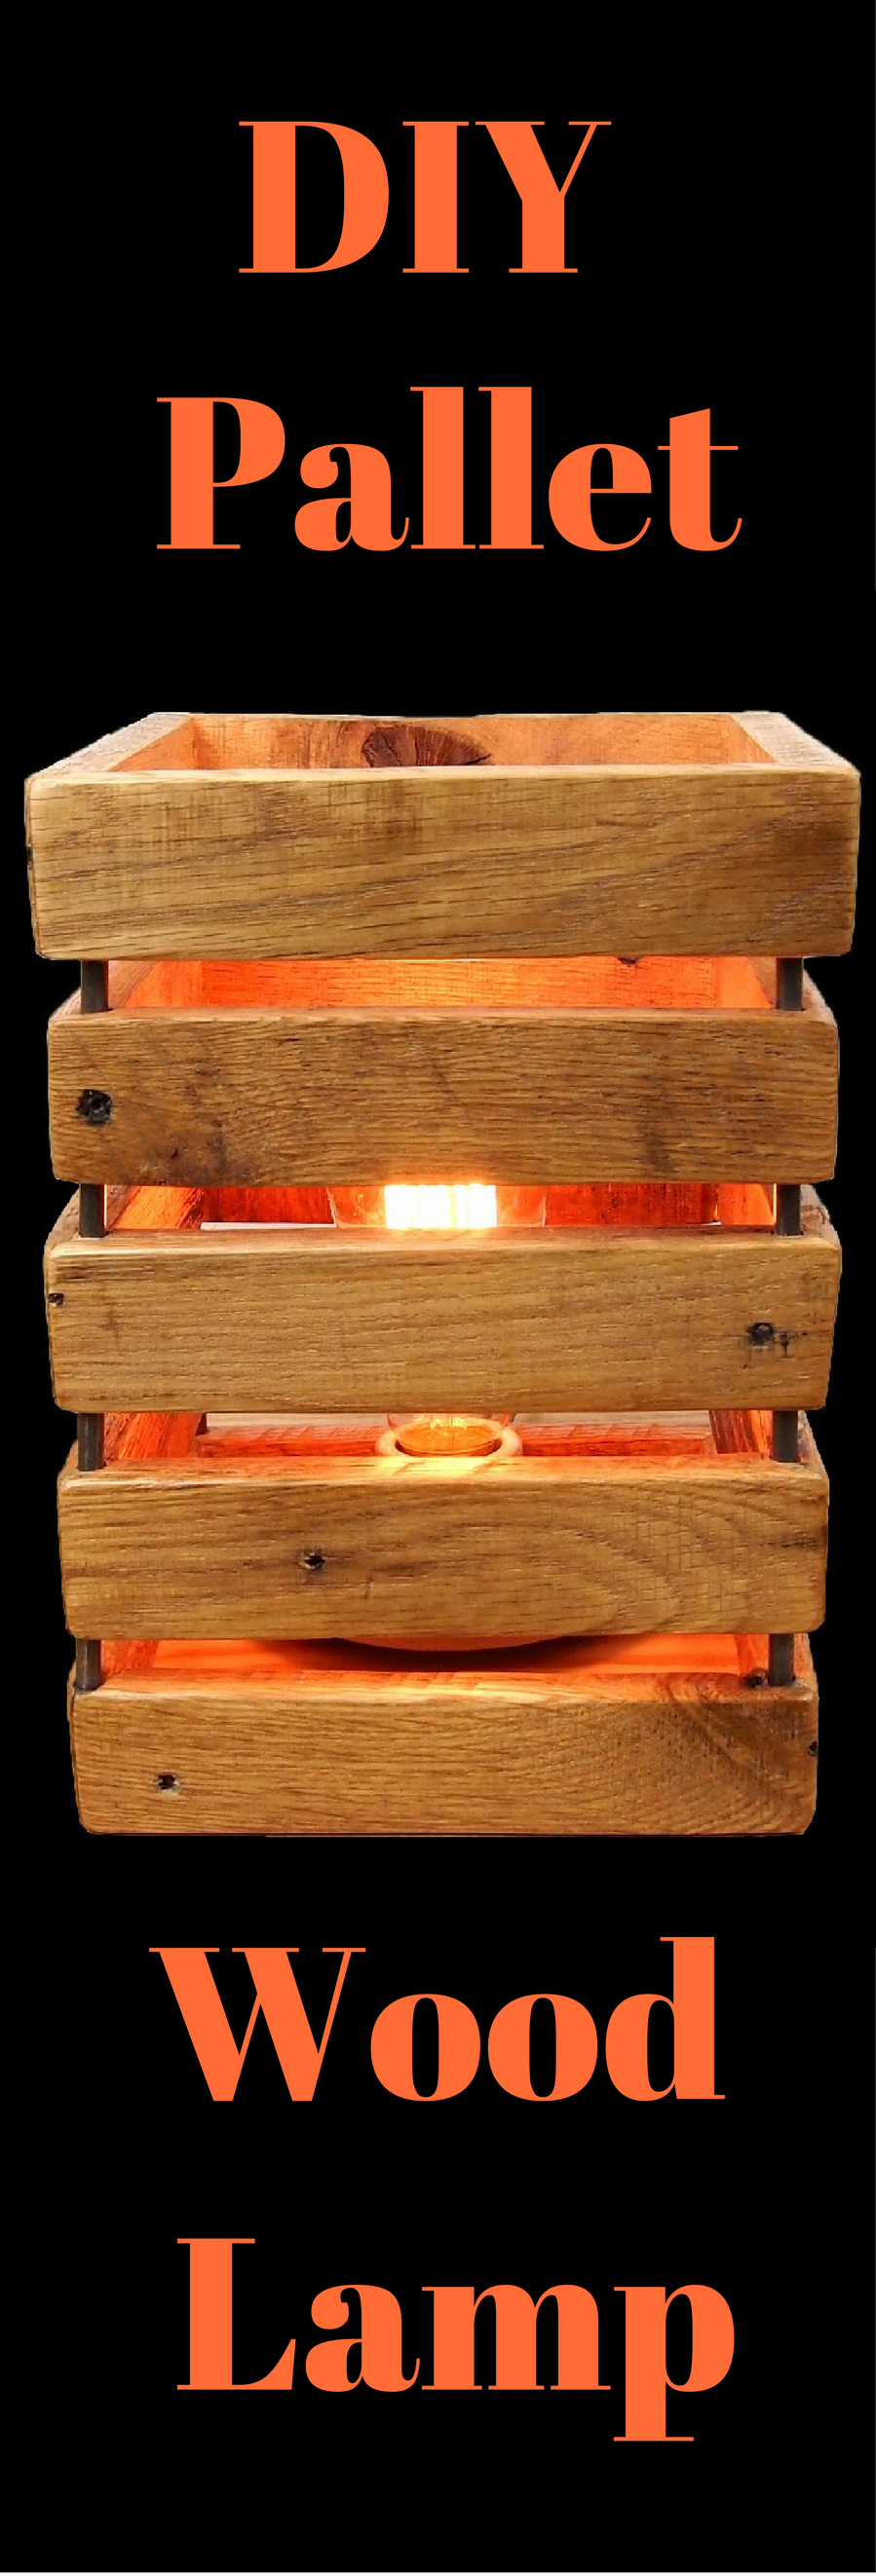 DIY Pallet Lamp | Pallet diy, Easy woodworking projects ...